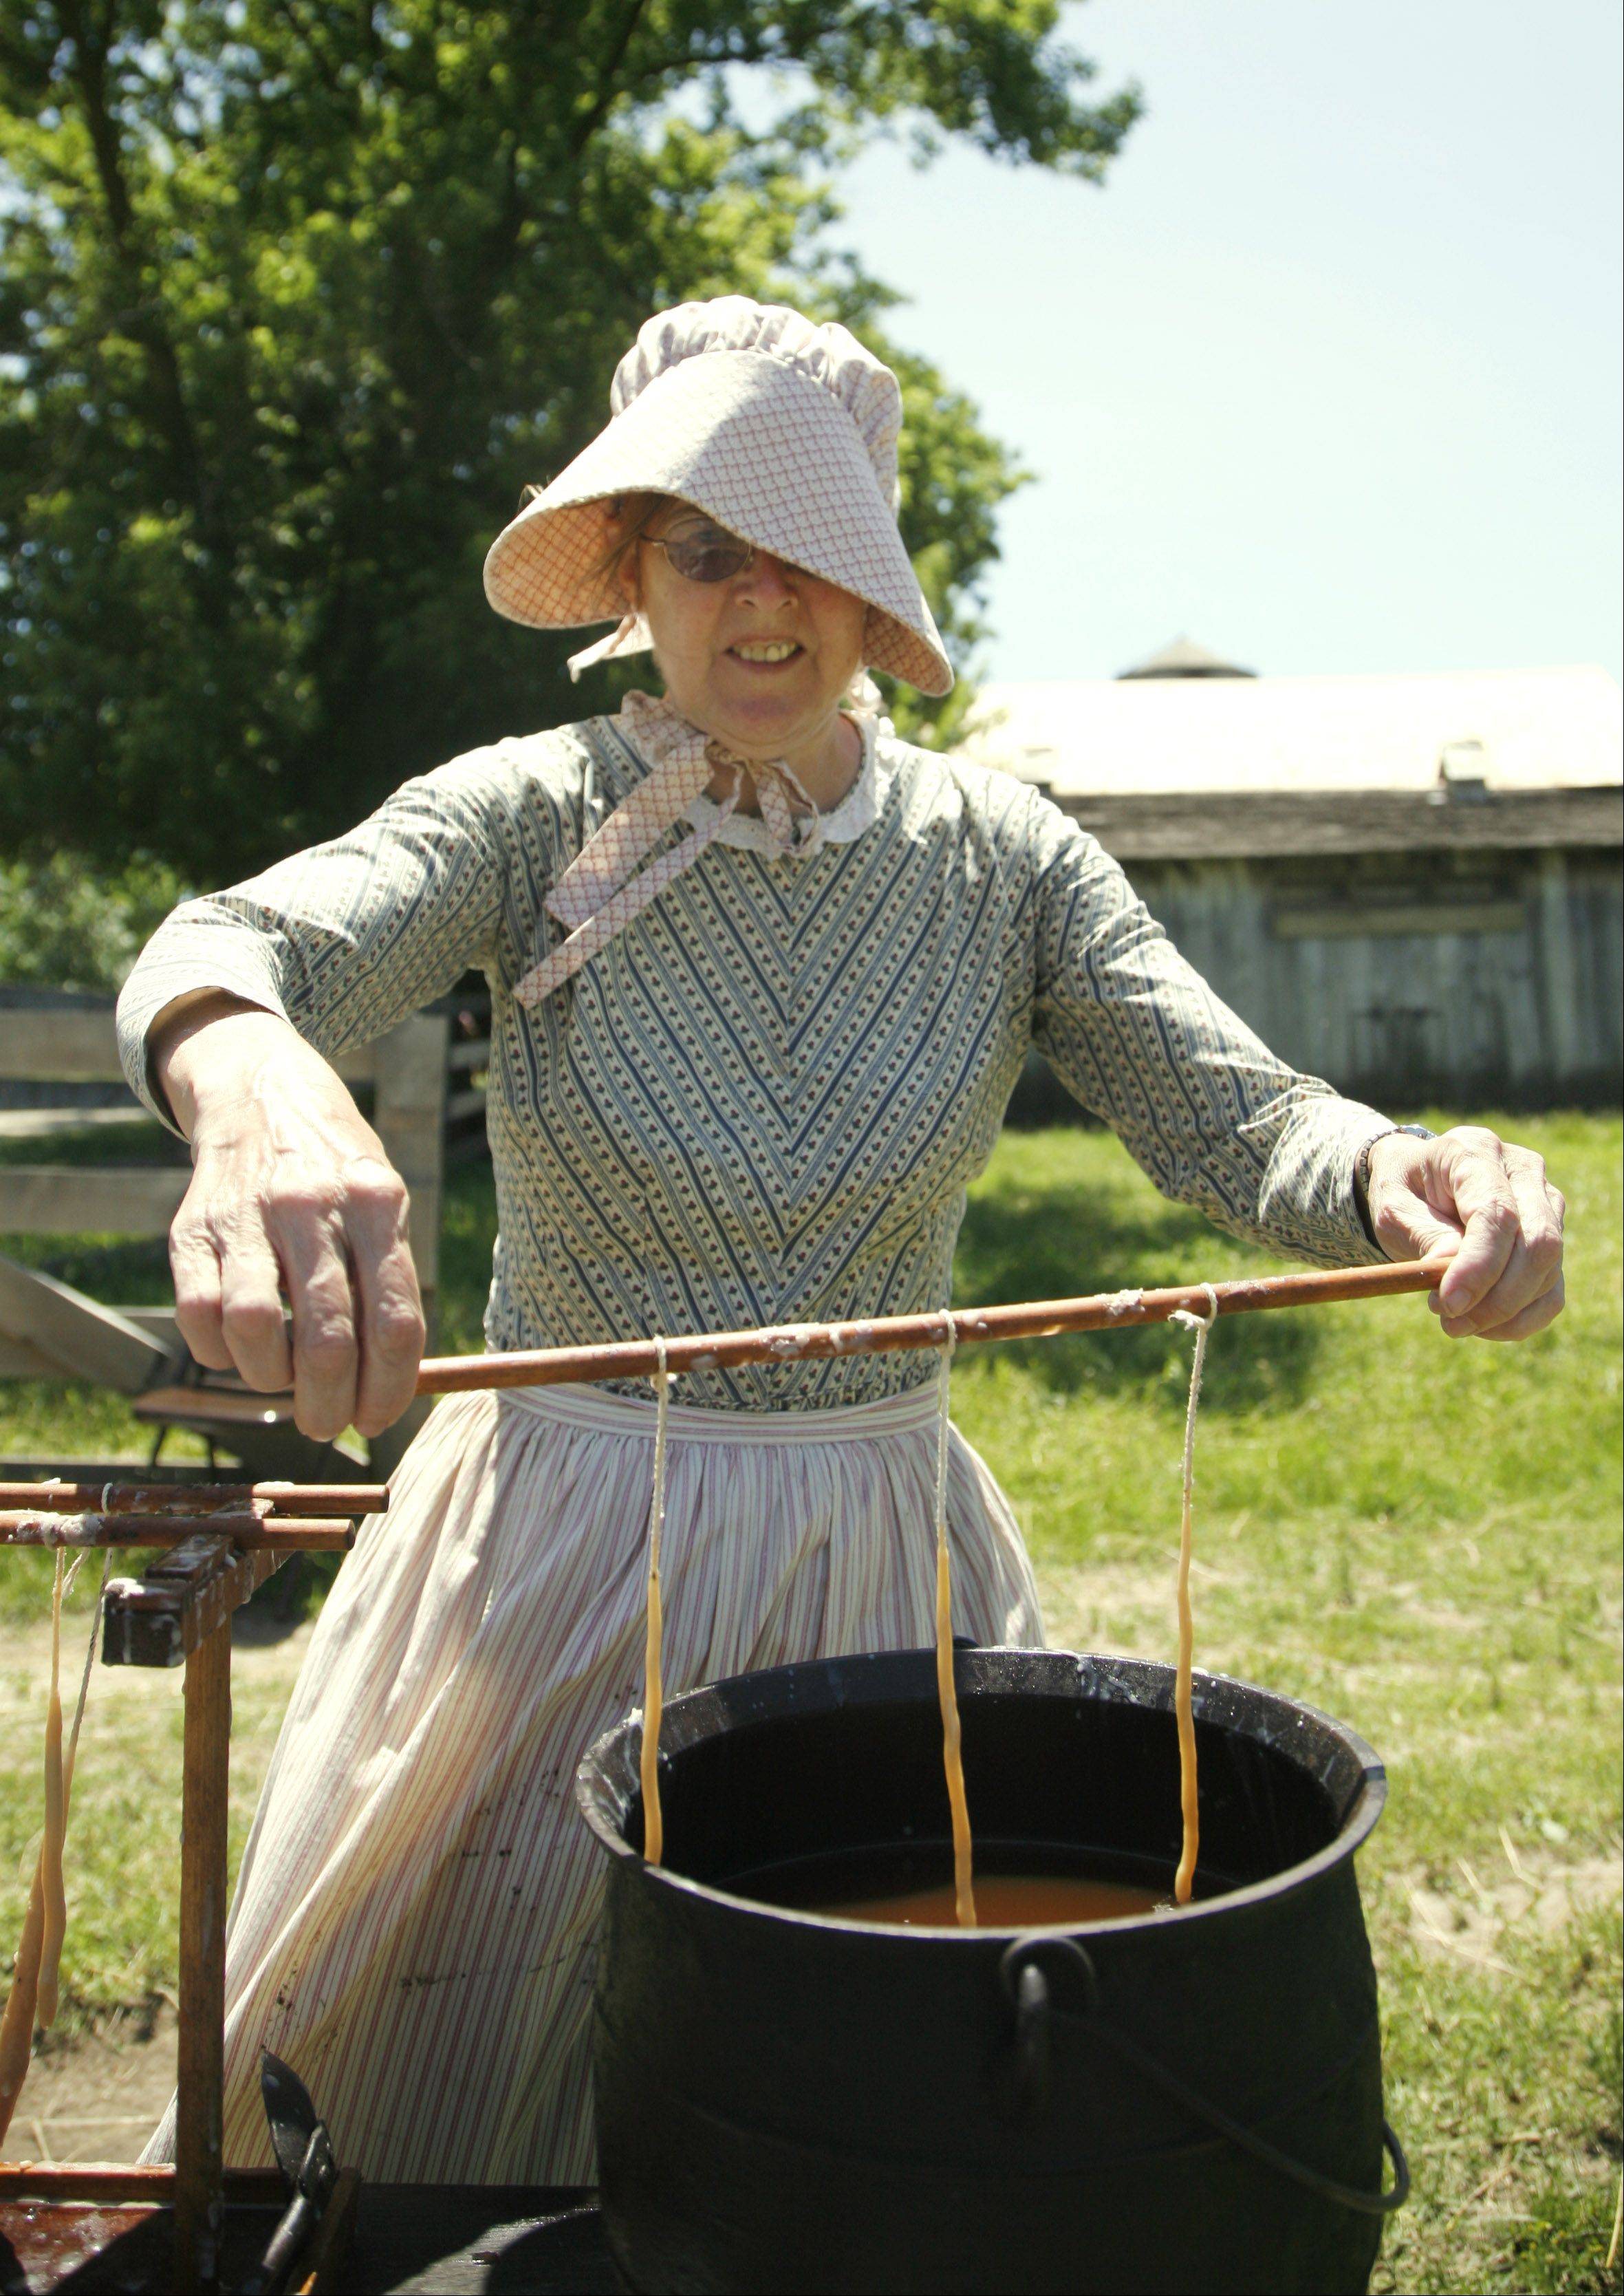 Helen Bauer of Campton Hills demonstrates candle making during a previous 1840s Day at Garfield Farm Museum in La Fox. This year's event is set for noon to 4 p.m. Sunday, June 16.